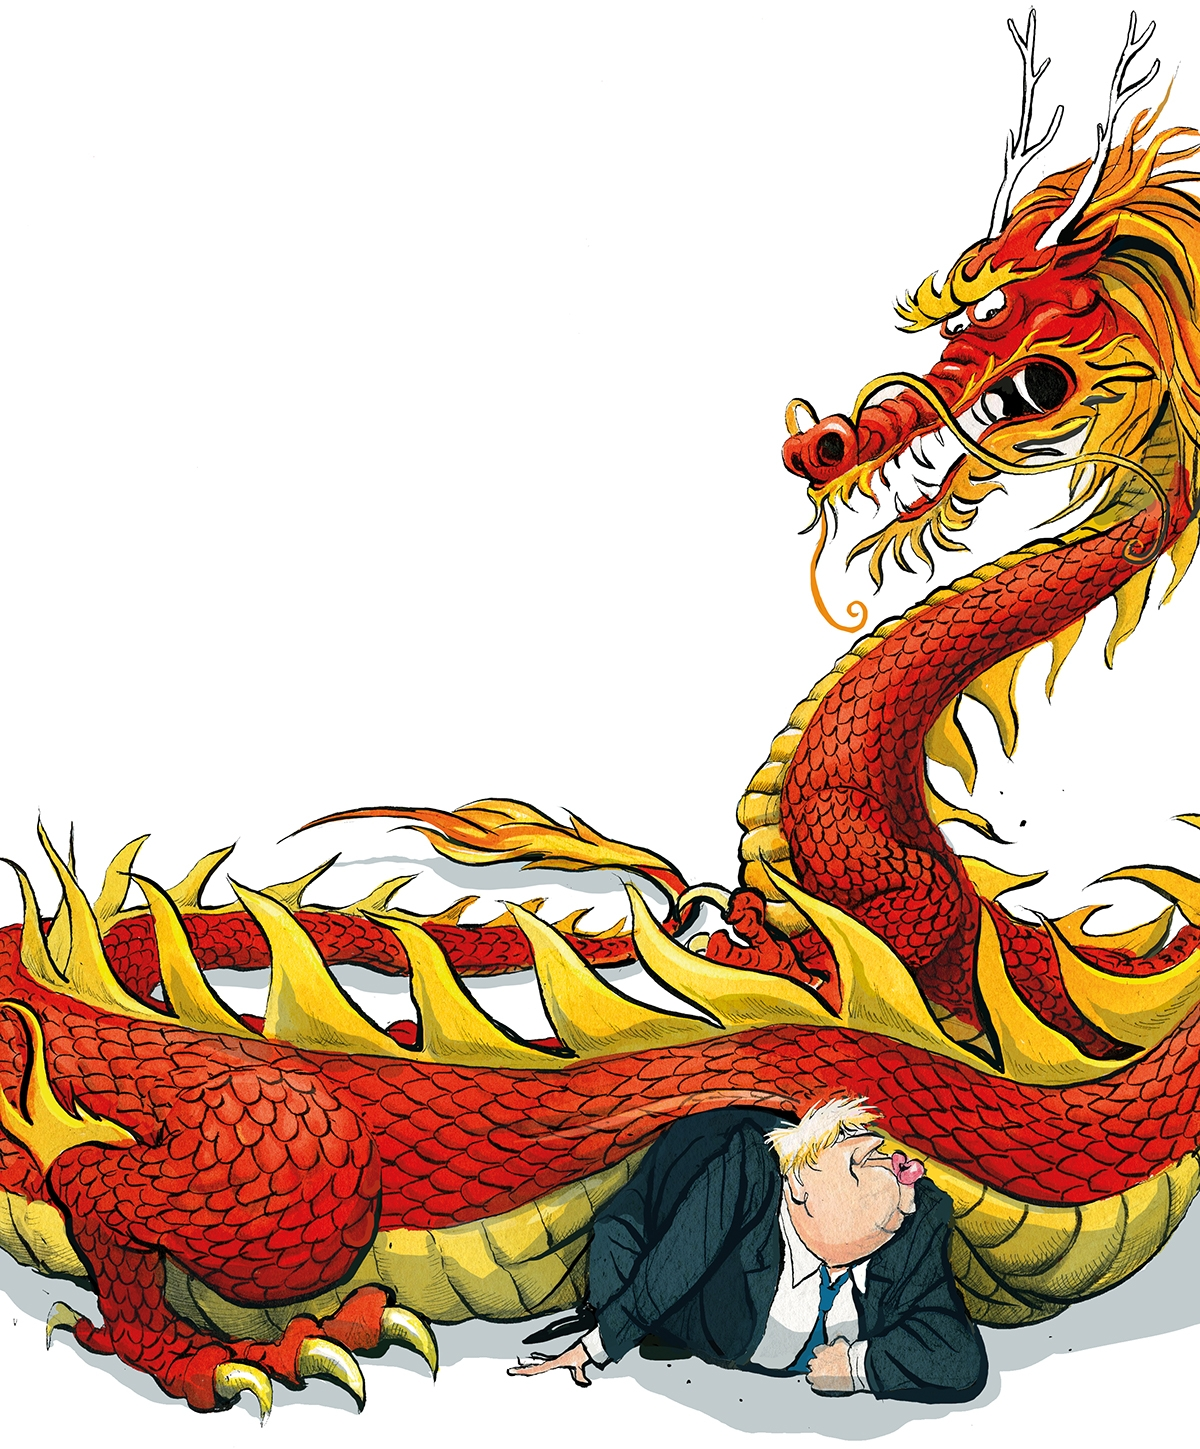 Escaping the dragon: rethinking our approach to China